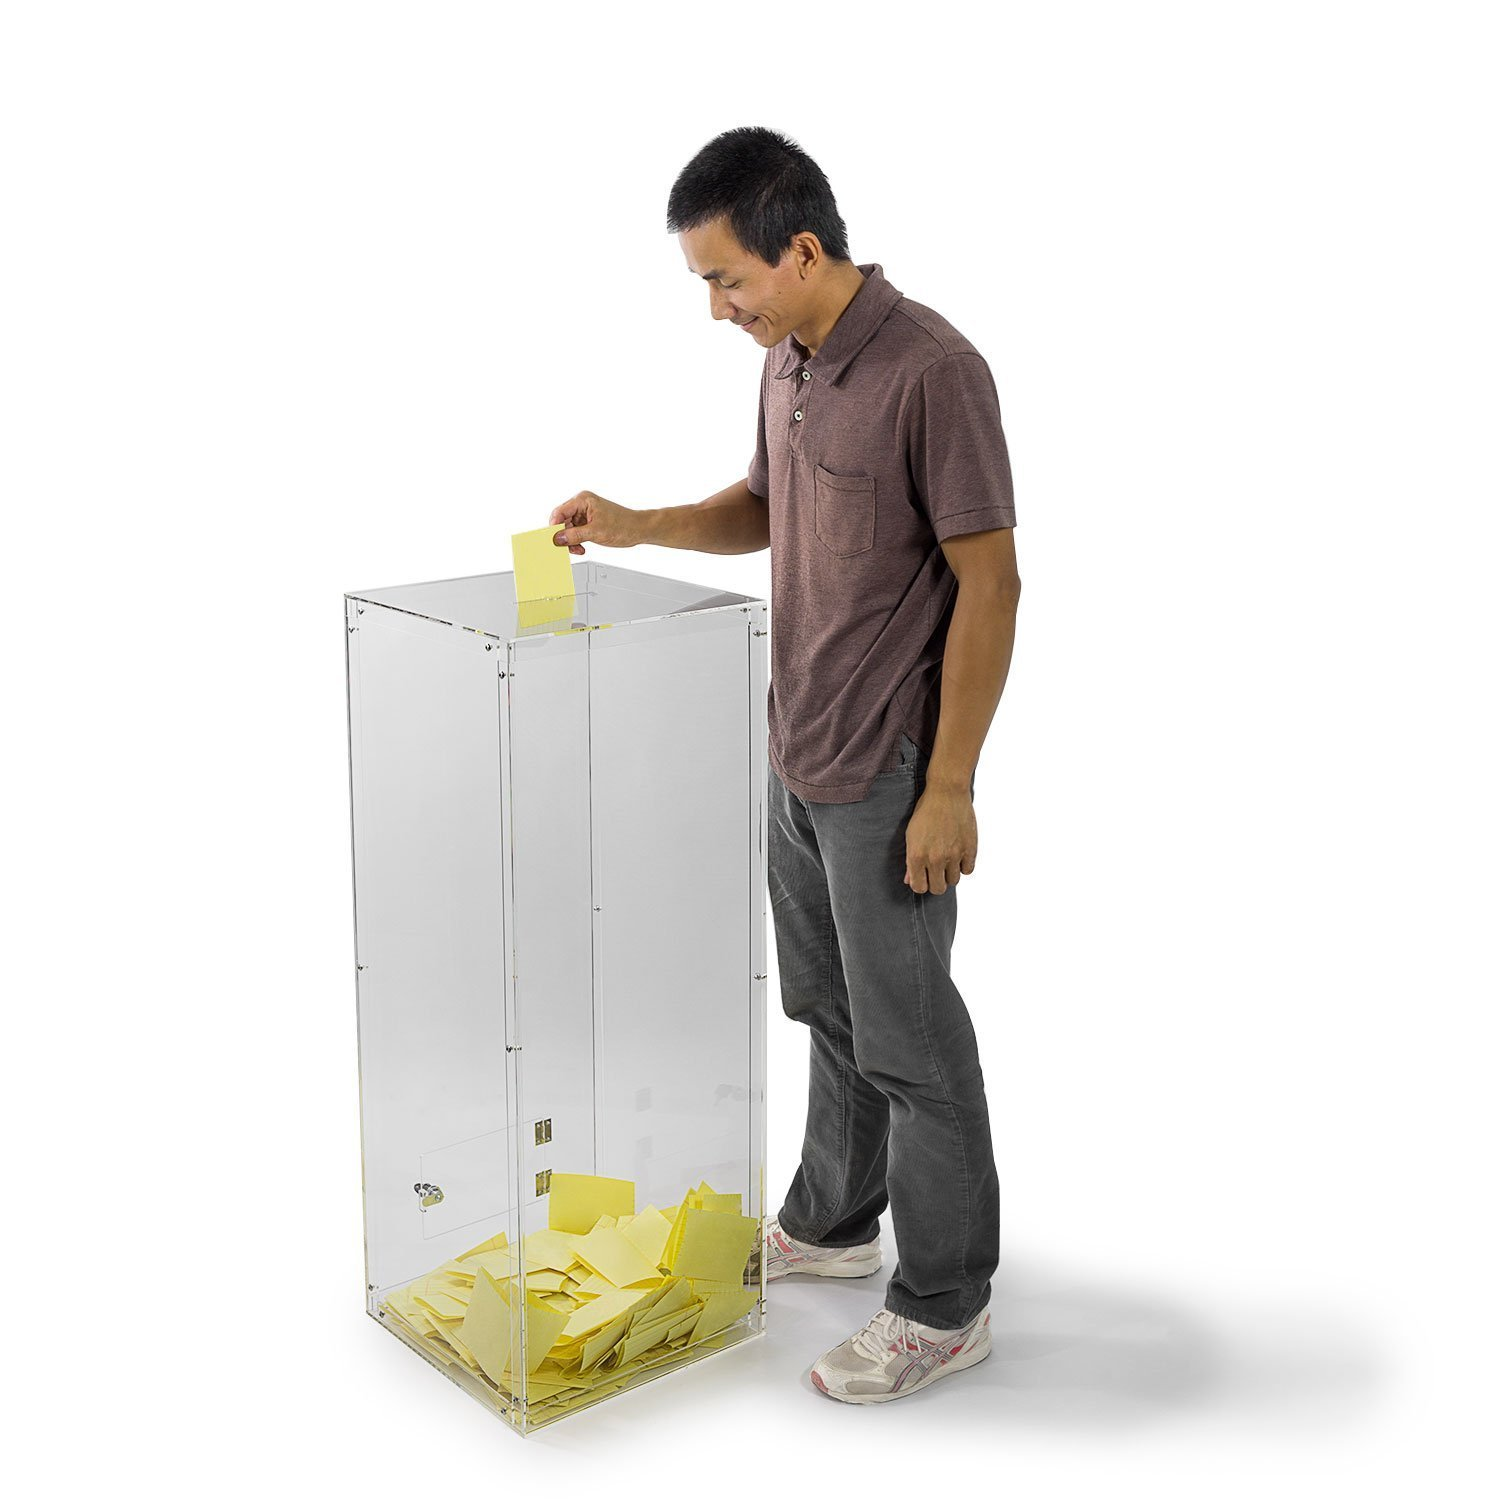 Source One Donation Box Clear Acrylic Ballot / Suggestion Box for Floor 40 Inches / Over 3 Foot Tall